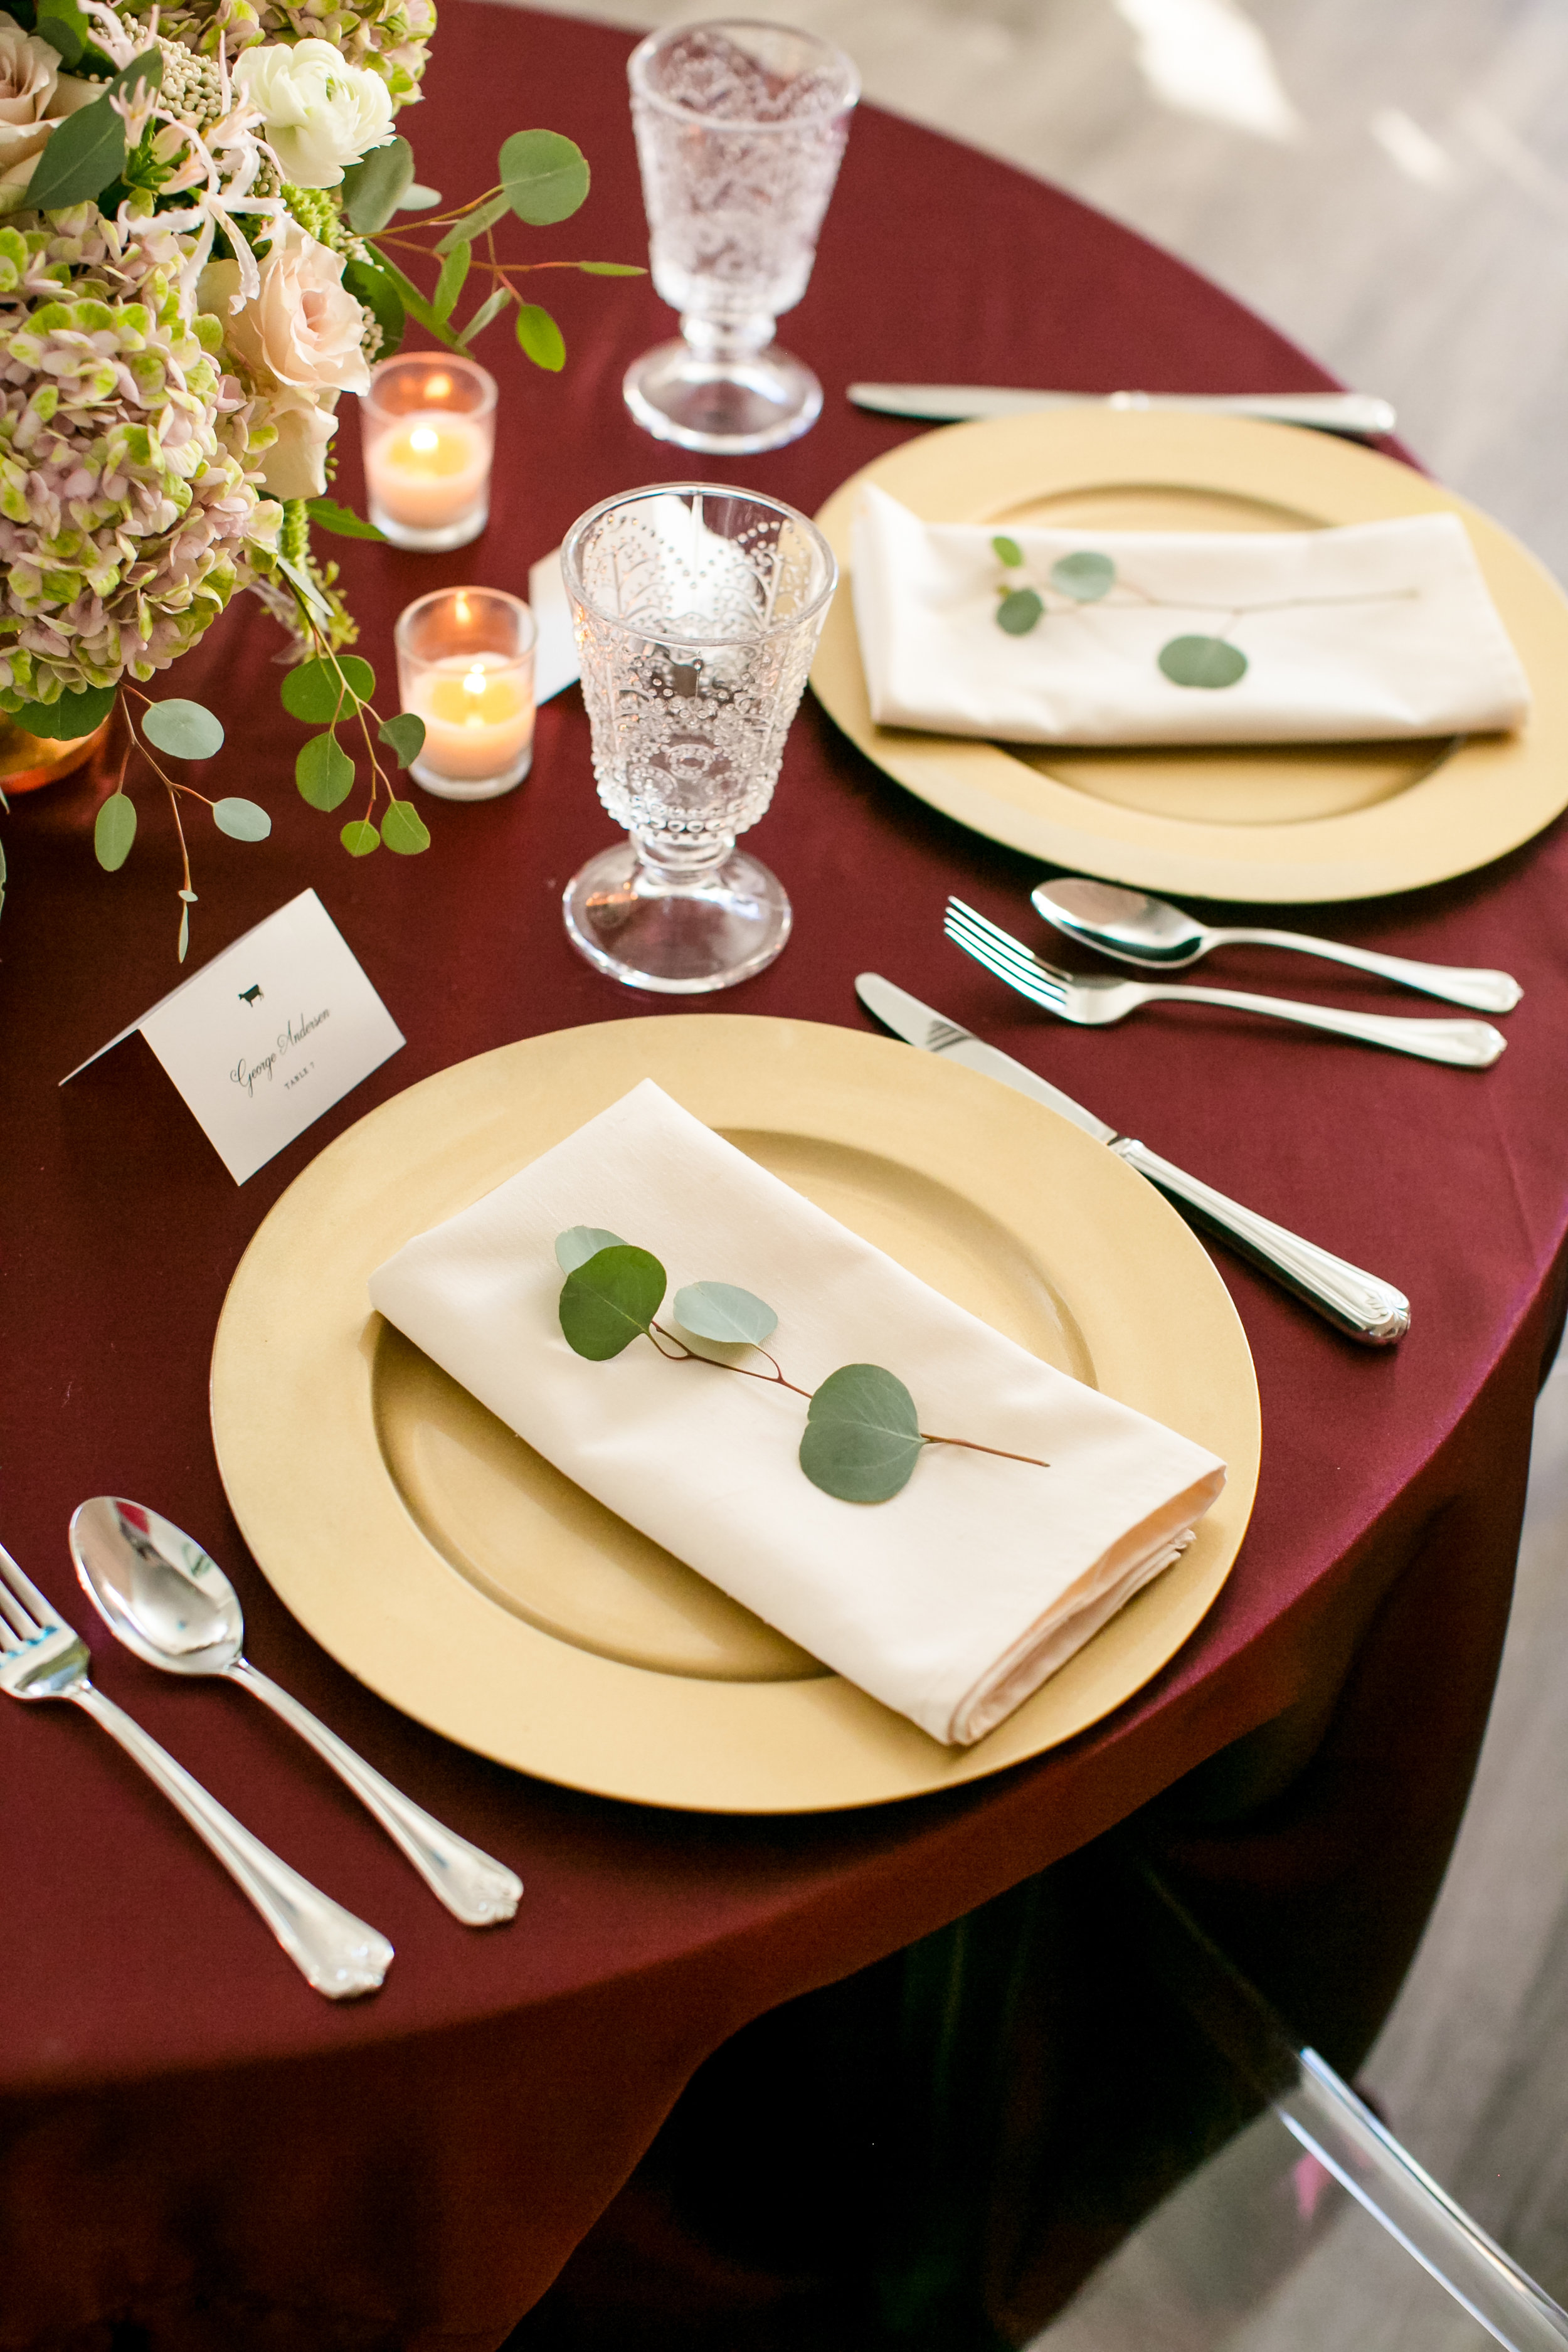 Jeannine Marie Photography | We've Got it Covered | Bel Fiore | Sixpence Events & Planning table styling for wedding crimson satin table cloth with gold chargers and white napkins